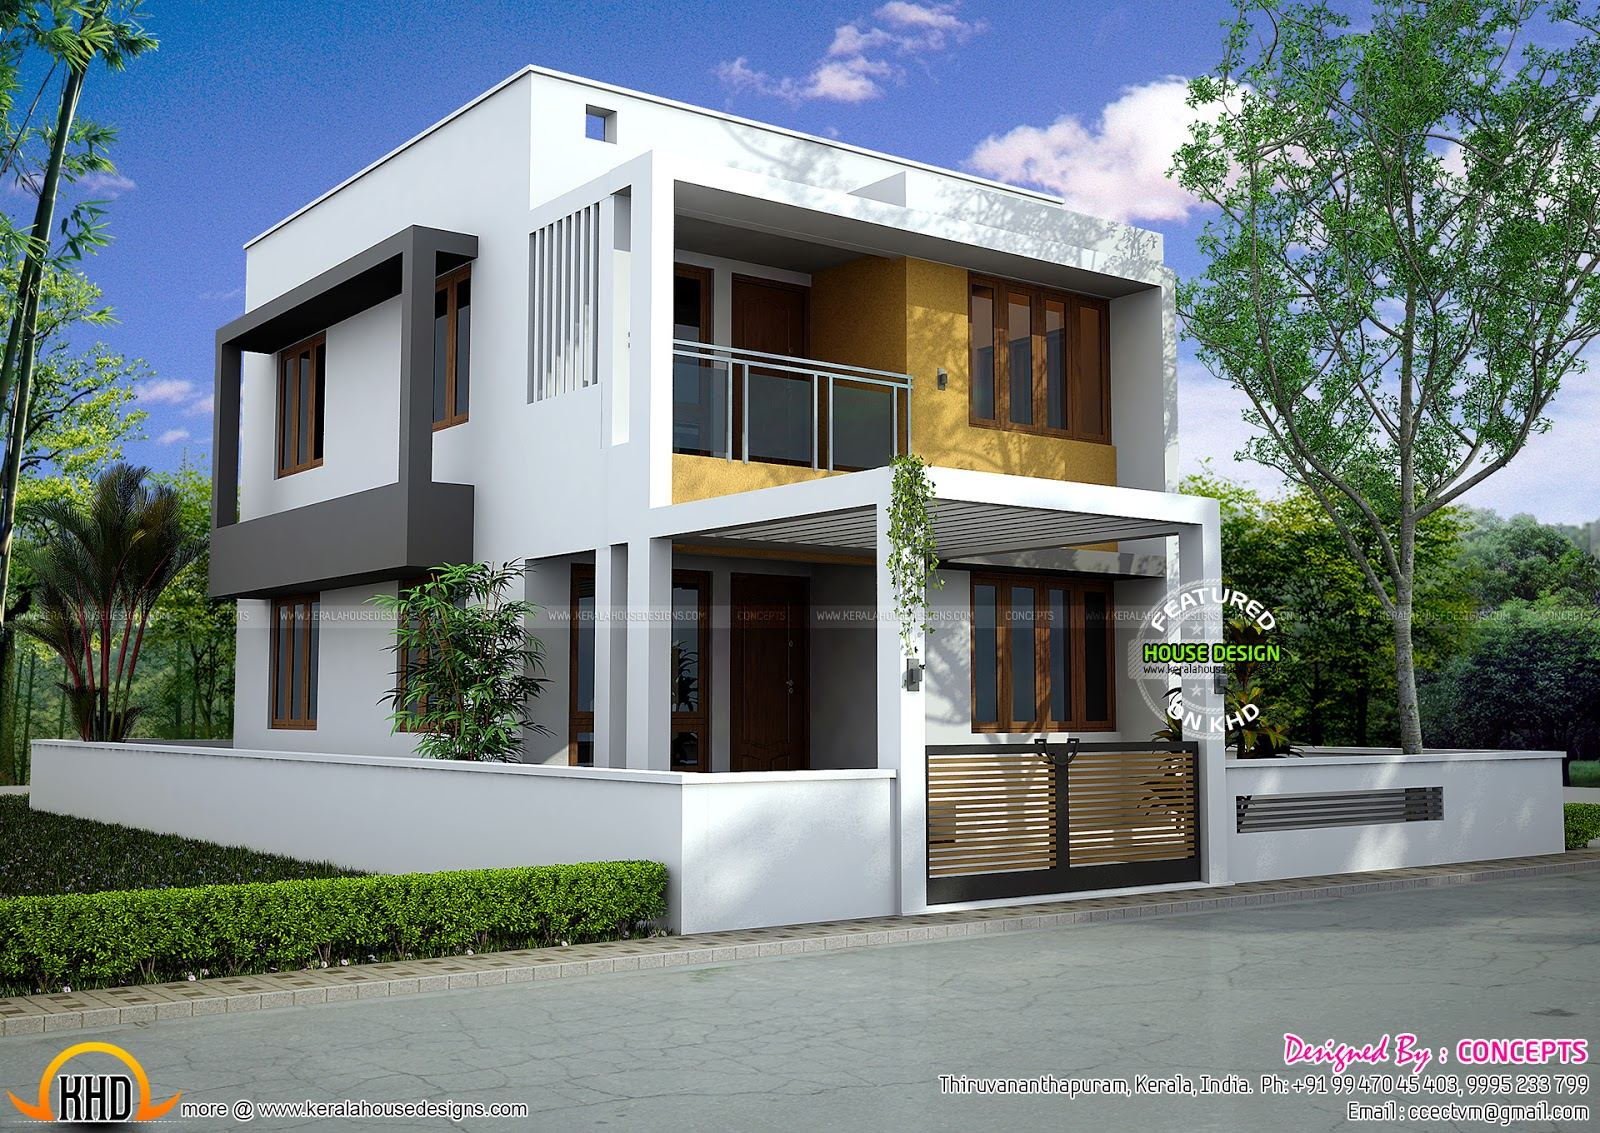 Floor plan of modern 3 bedroom house kerala home design for Modern three bedroom house plans